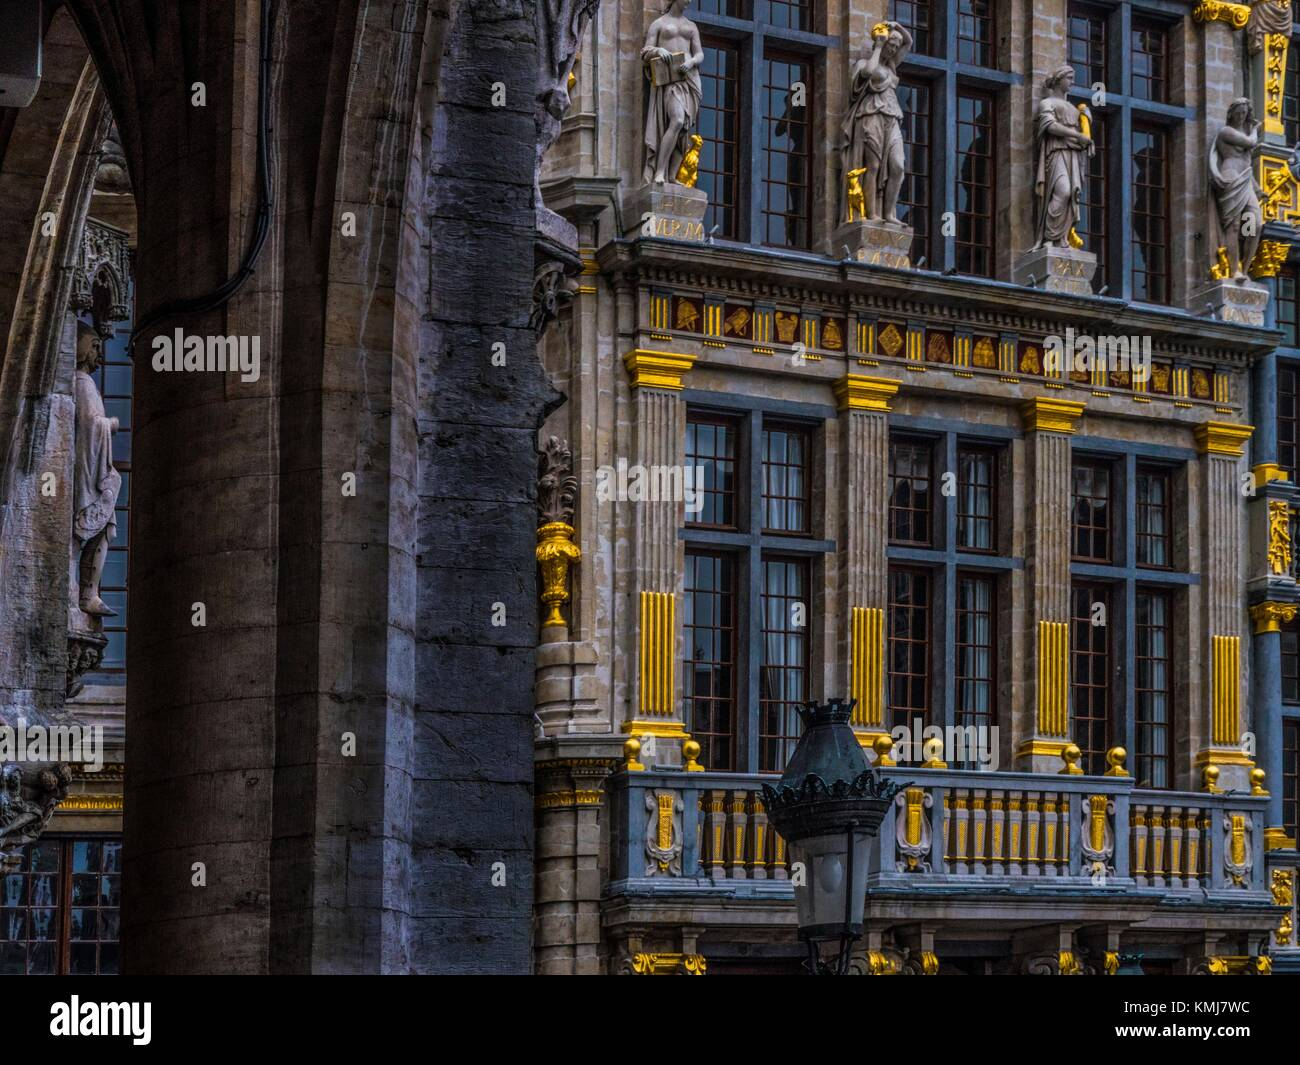 Belgium.  detail at the 'Grande Place', Brussels. - Stock Image